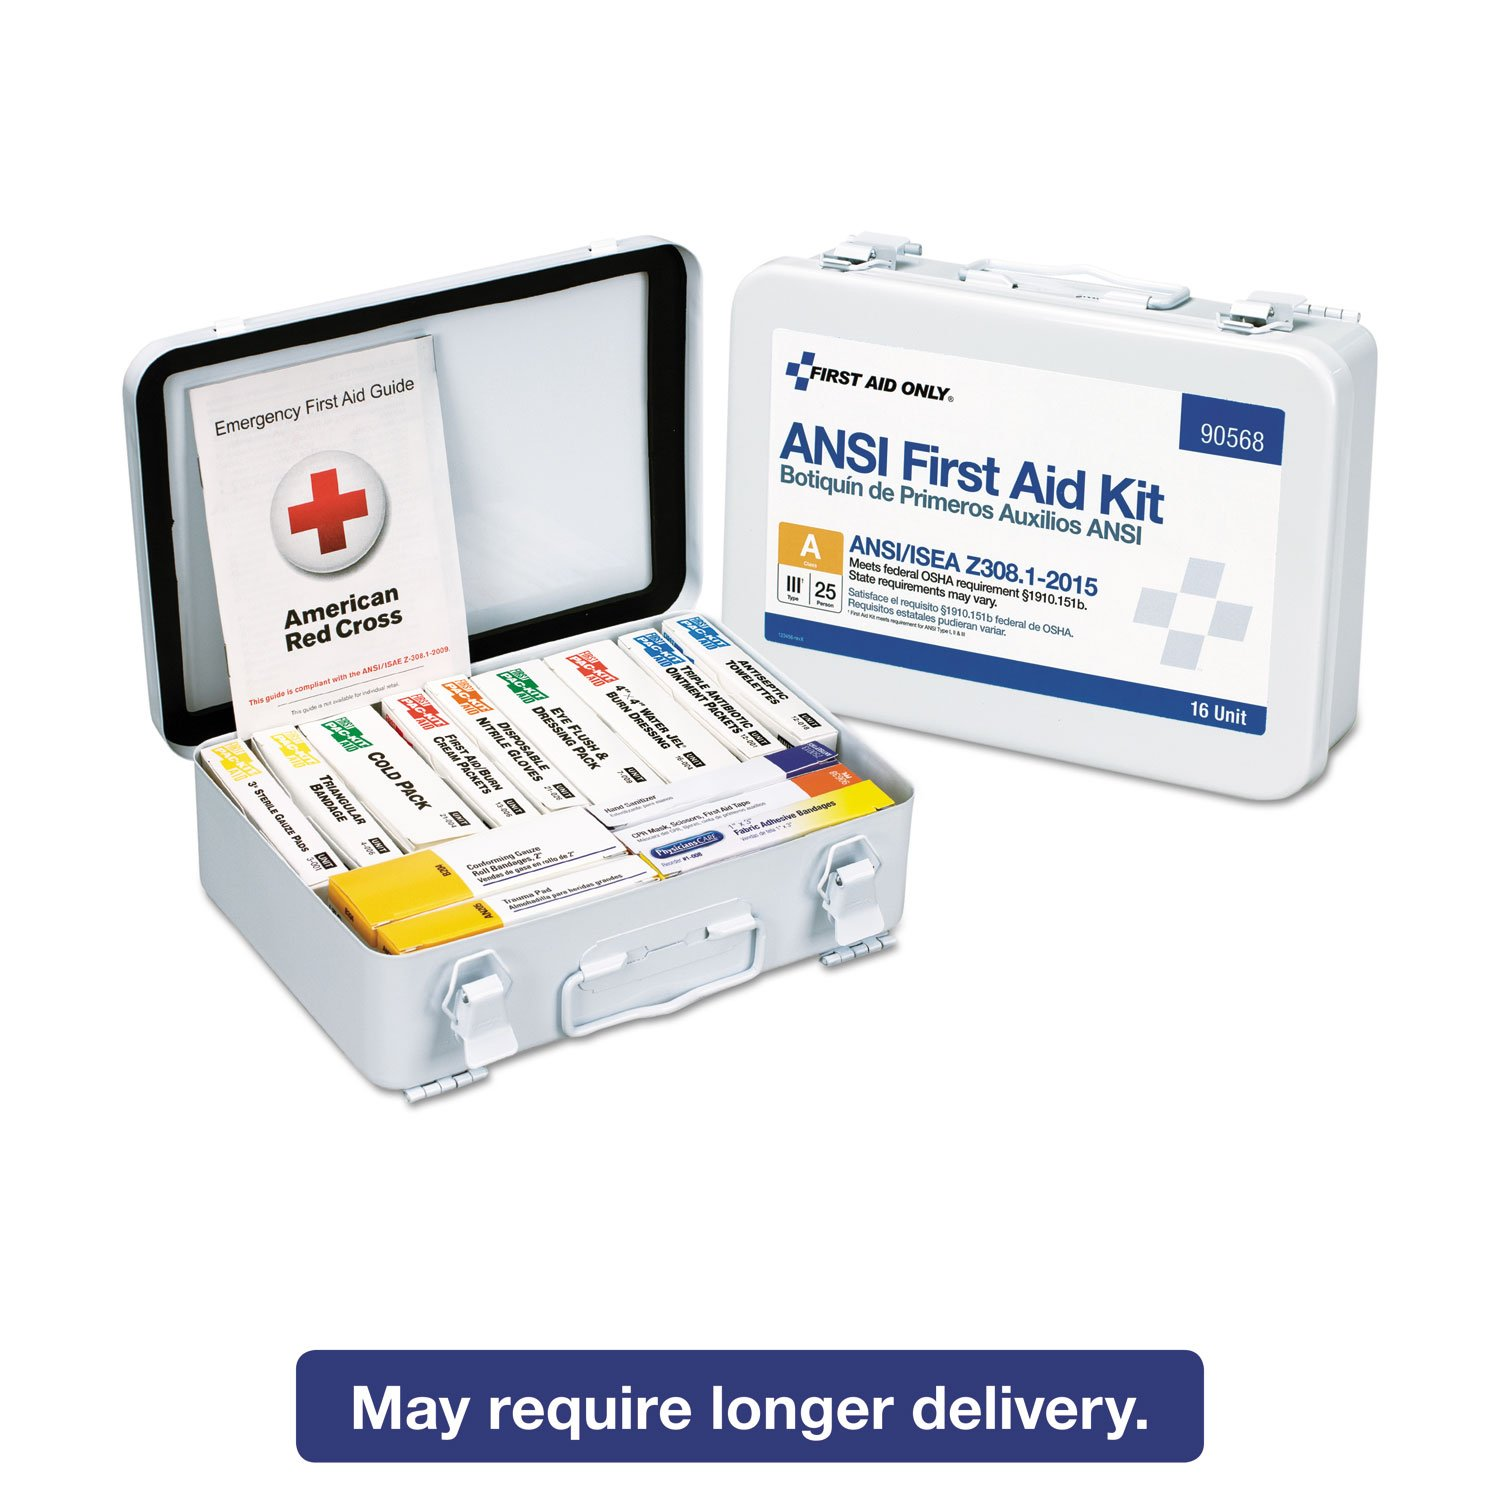 Amazon.com: First Aid Only 90568 Unitized ANSI Compliant Class A Type III First Aid Kit for 25 People, 16 Units: Health & Personal Care